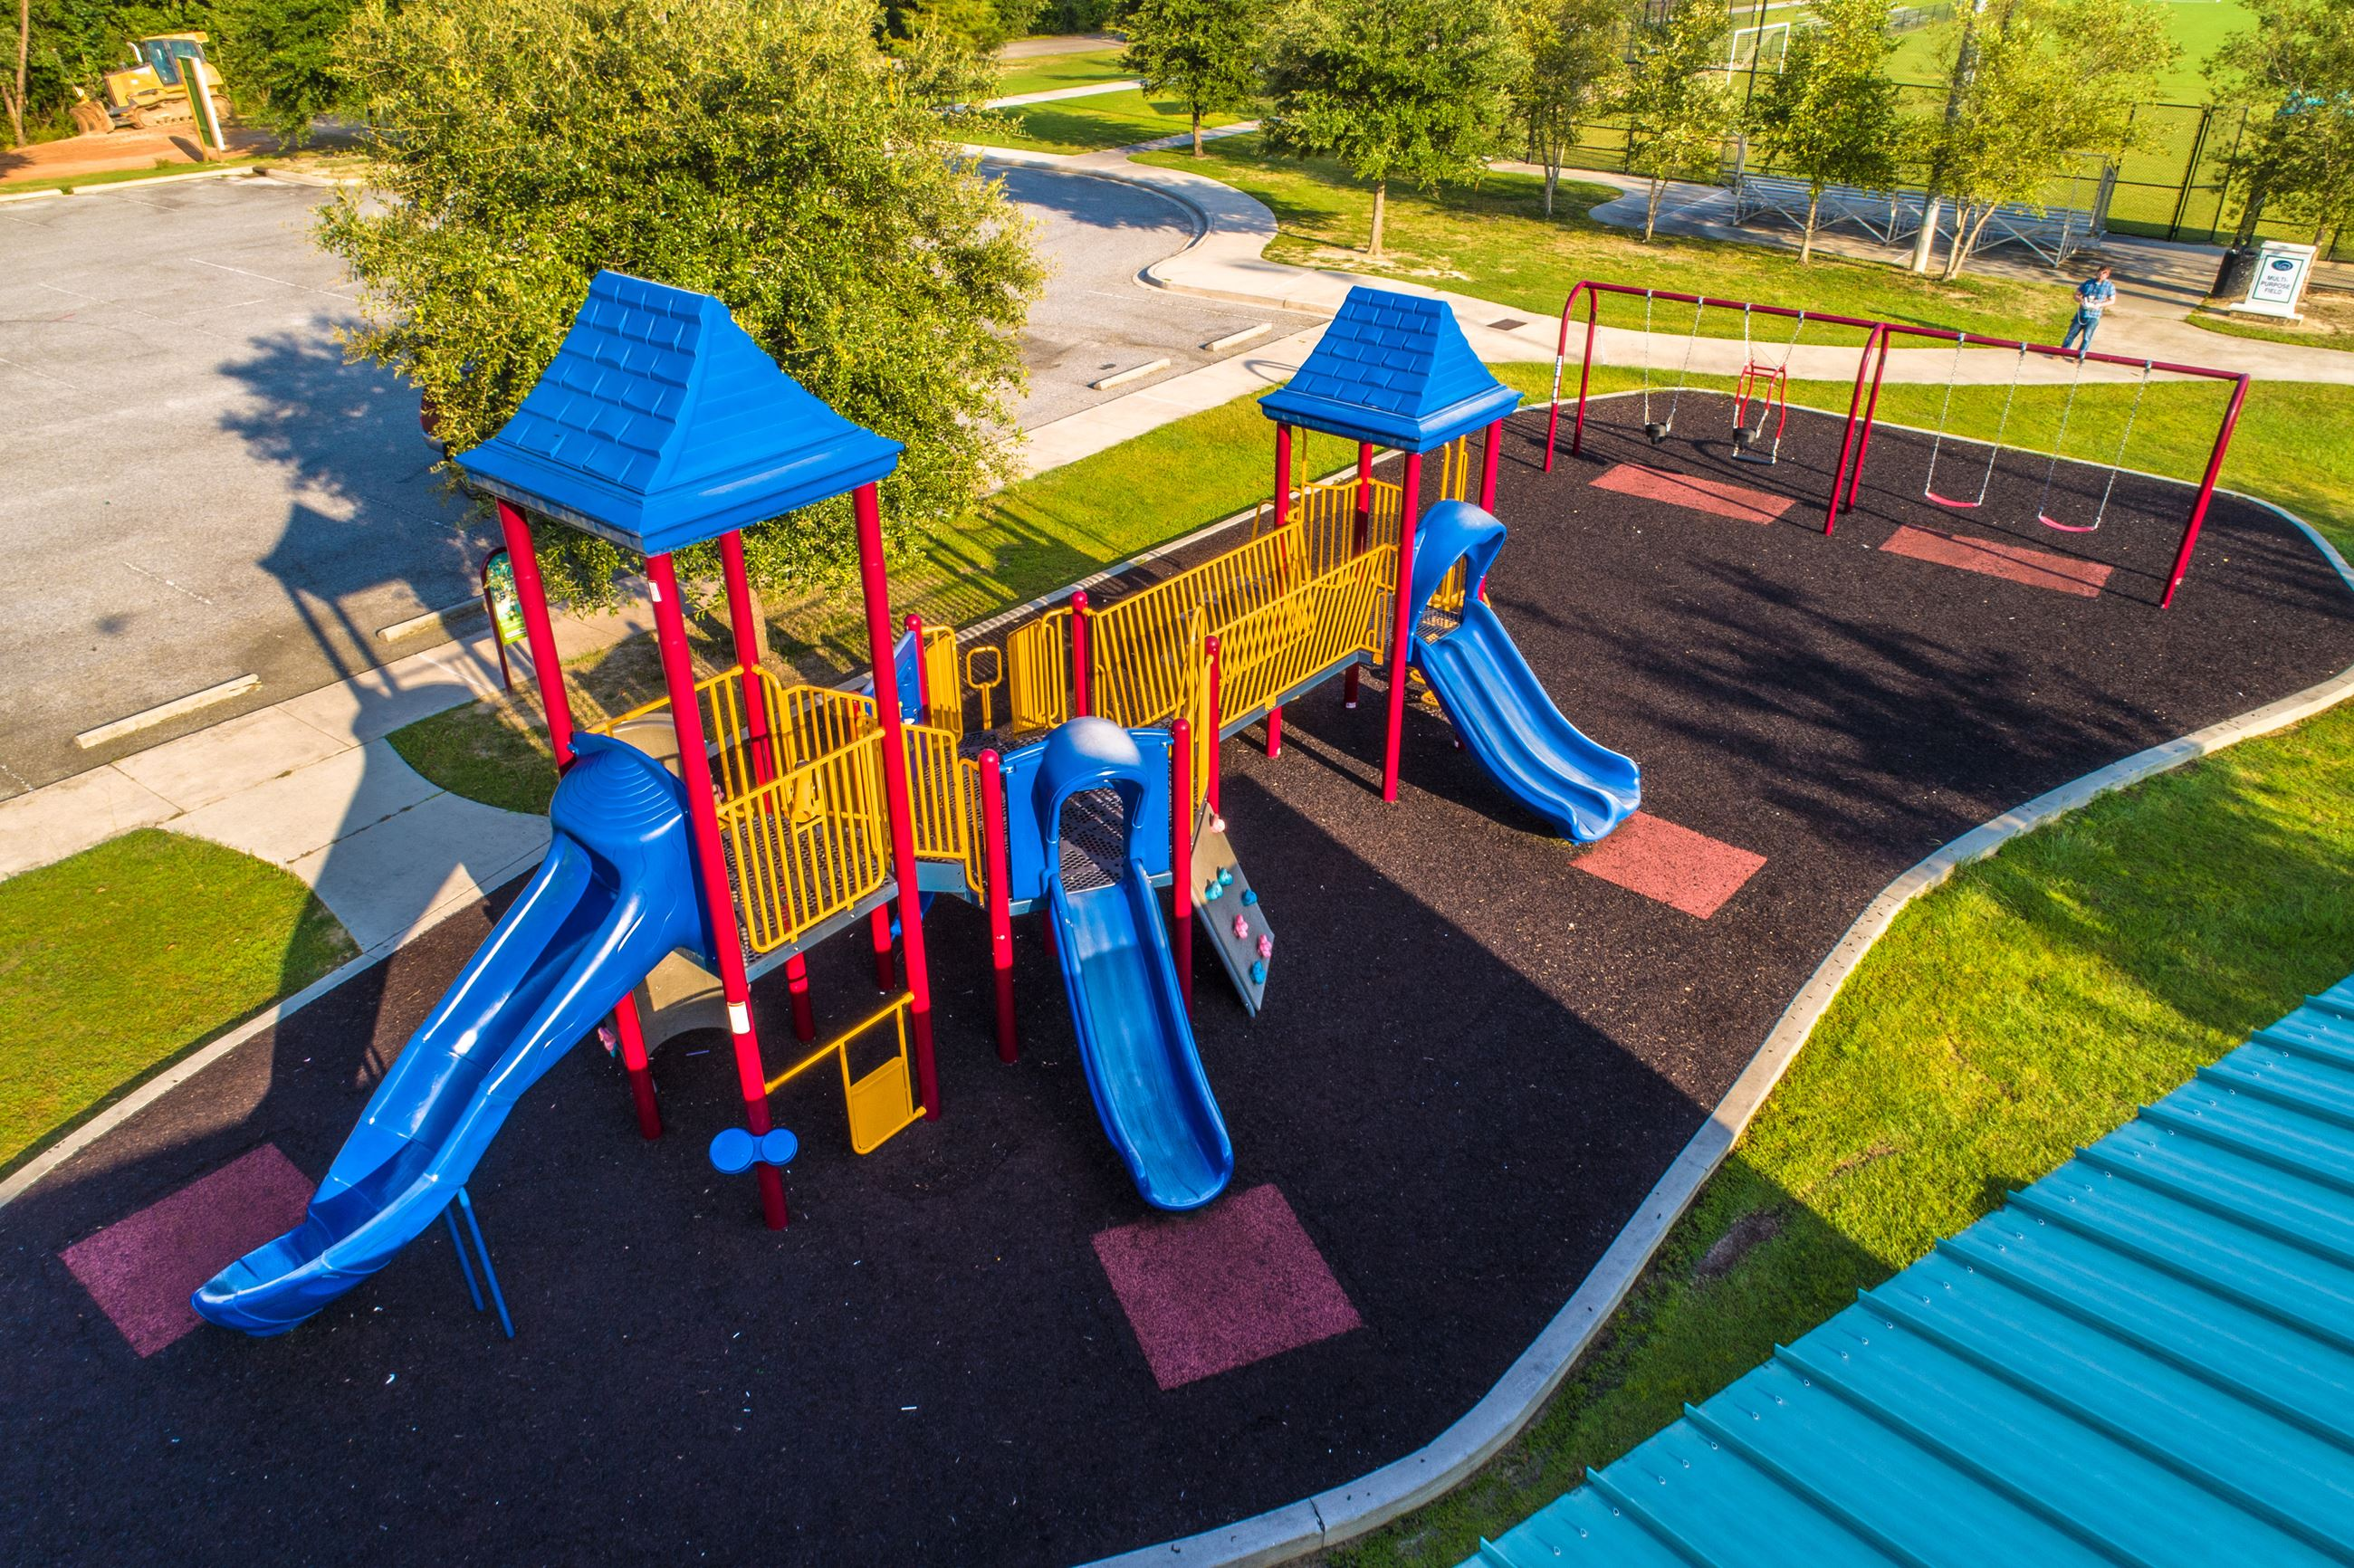 An image of an aerial view of a brightly colored playground.